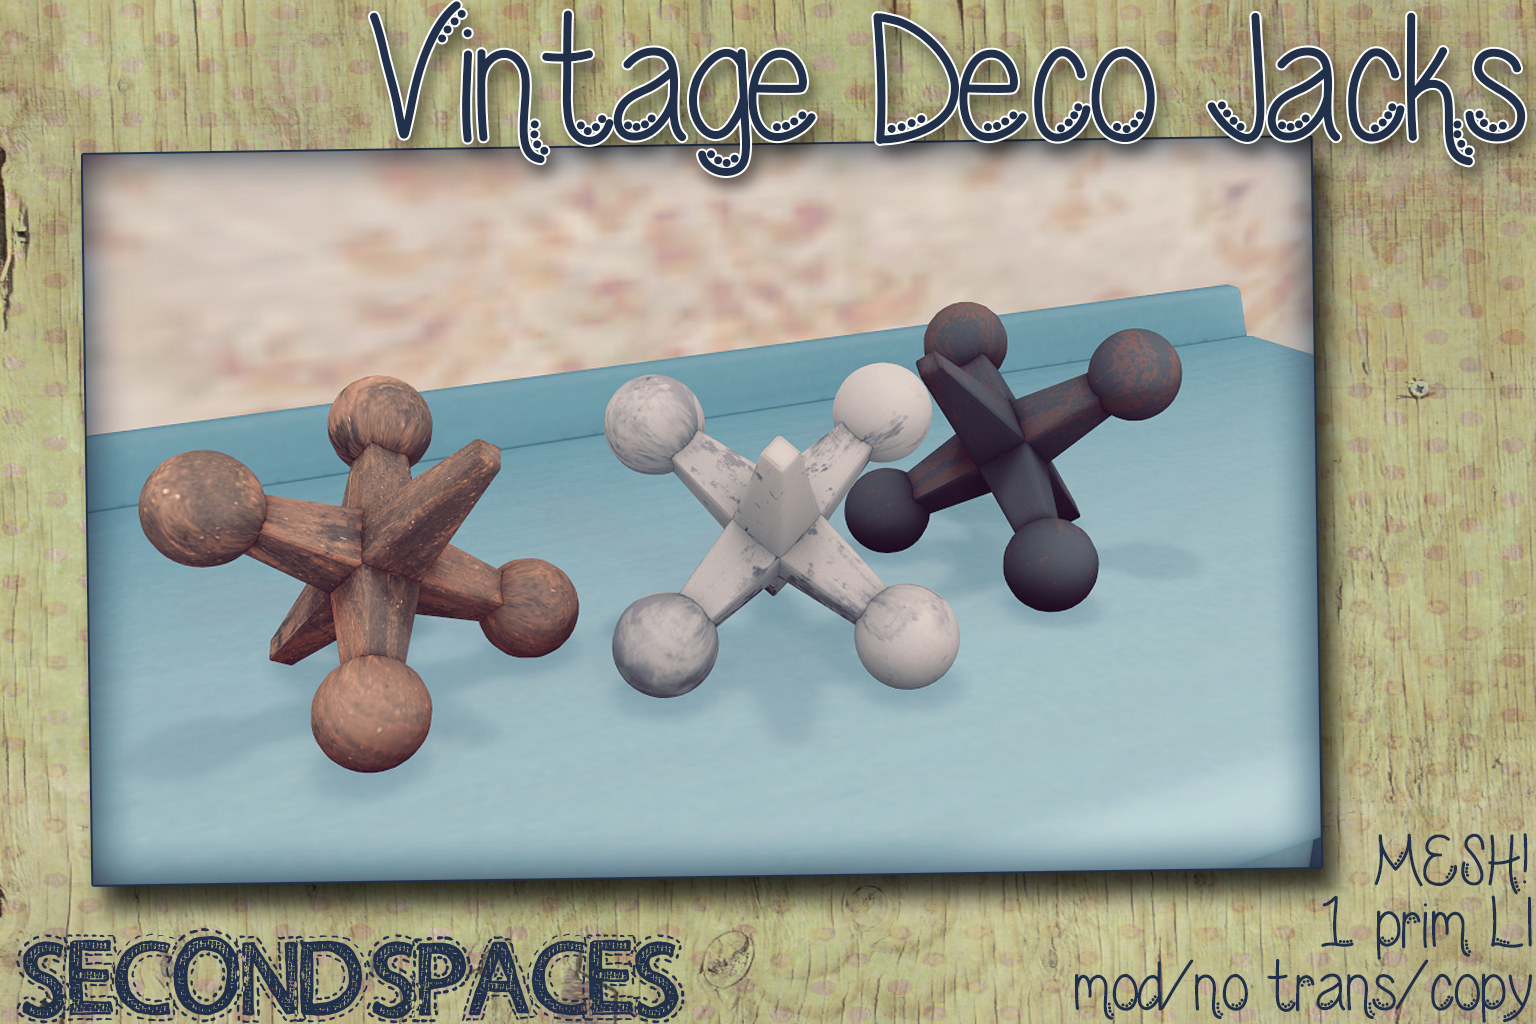 vintage deco jacks_vendor